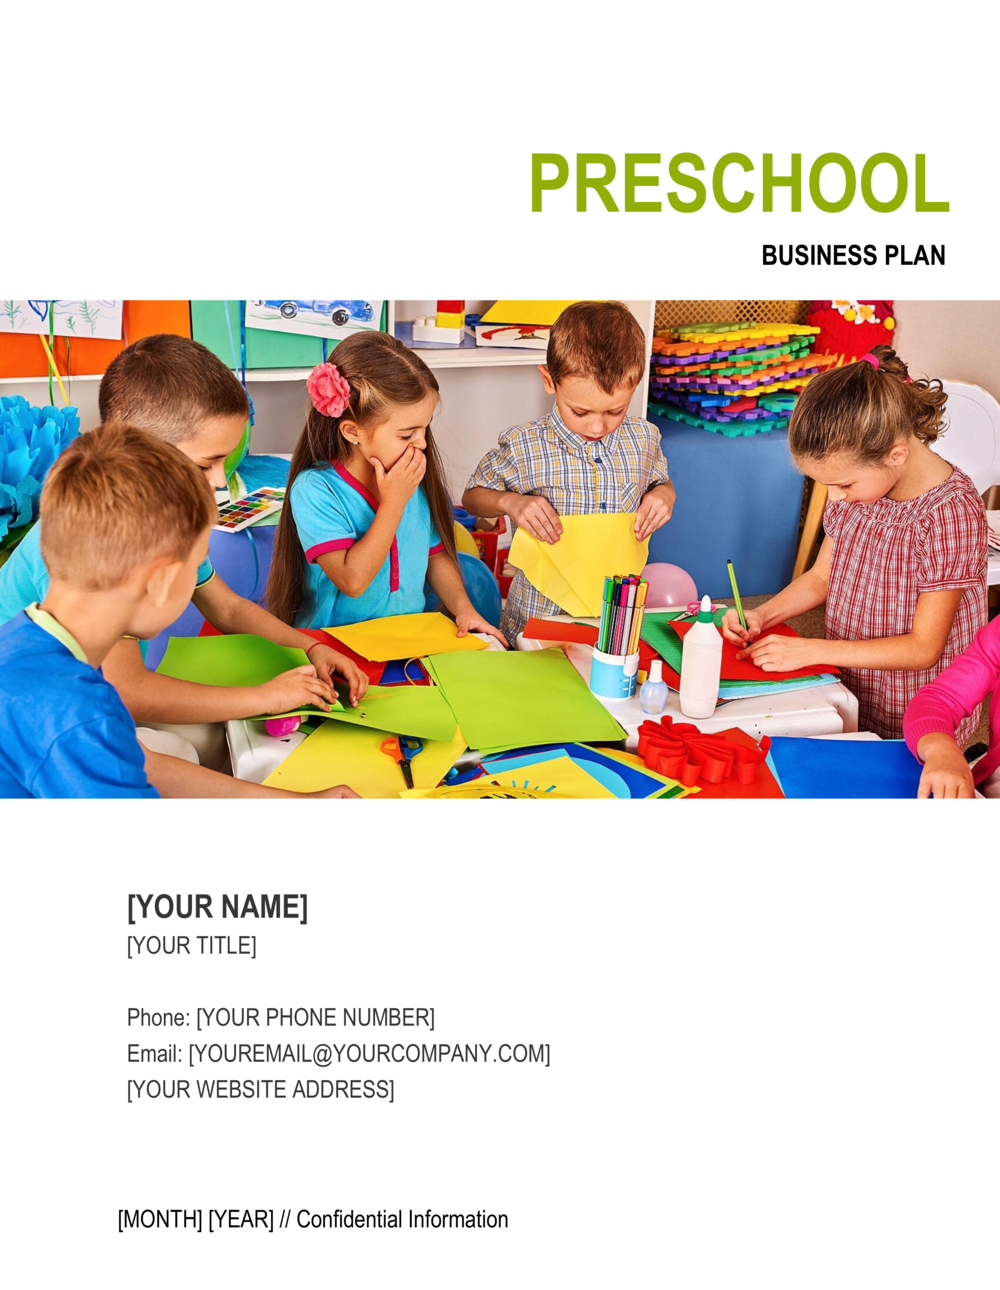 Business-in-a-Box's Preschool Business Plan Template